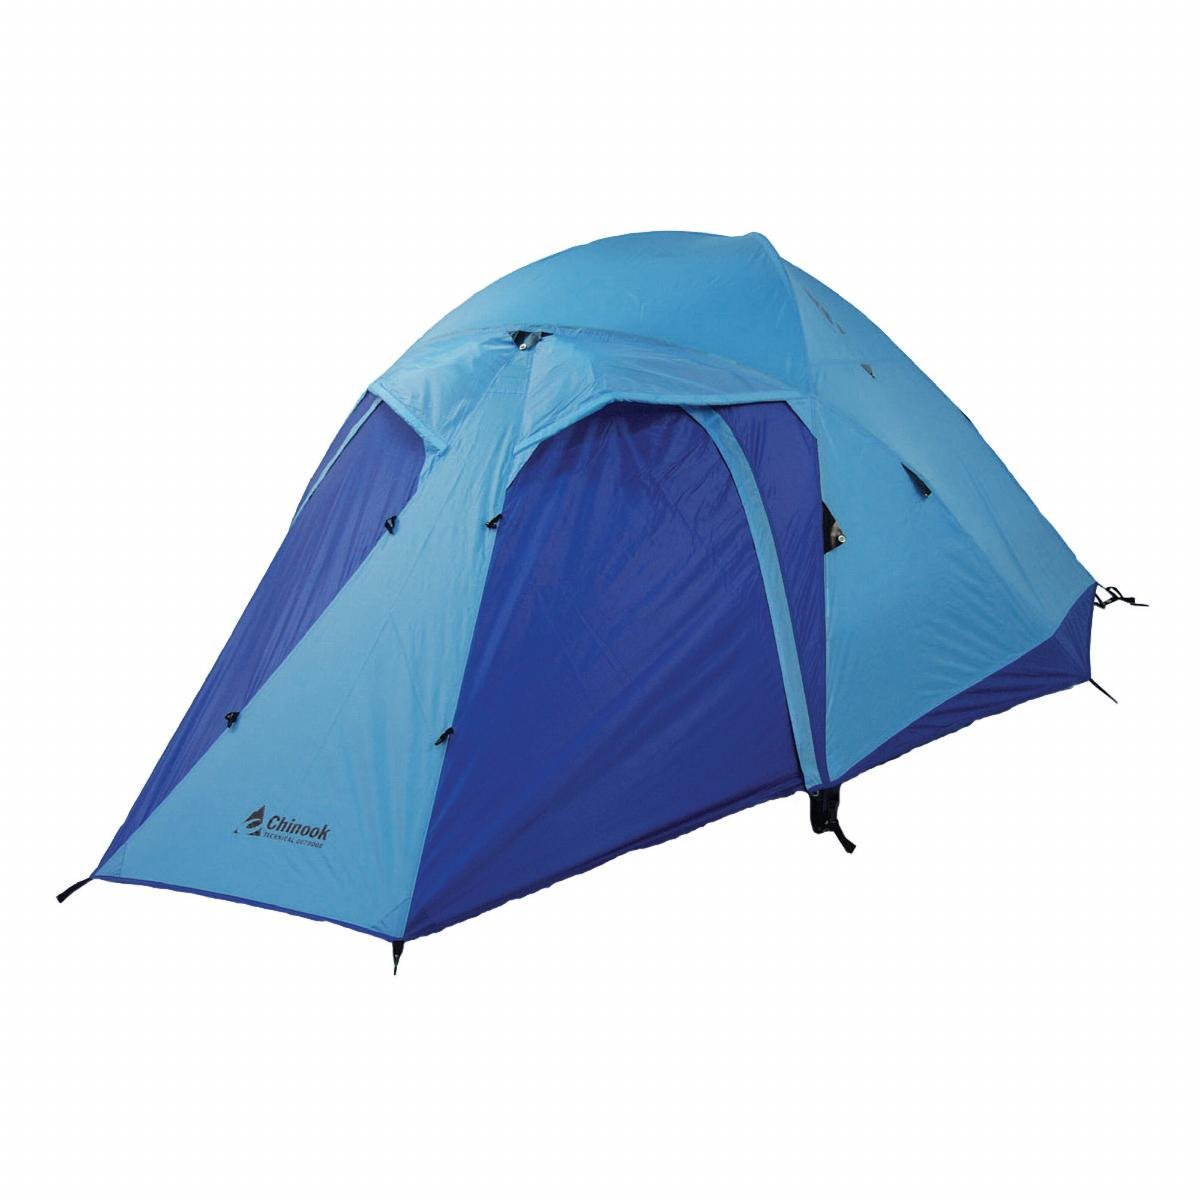 Chinook Cyclone Aluminum Tent 3 Person